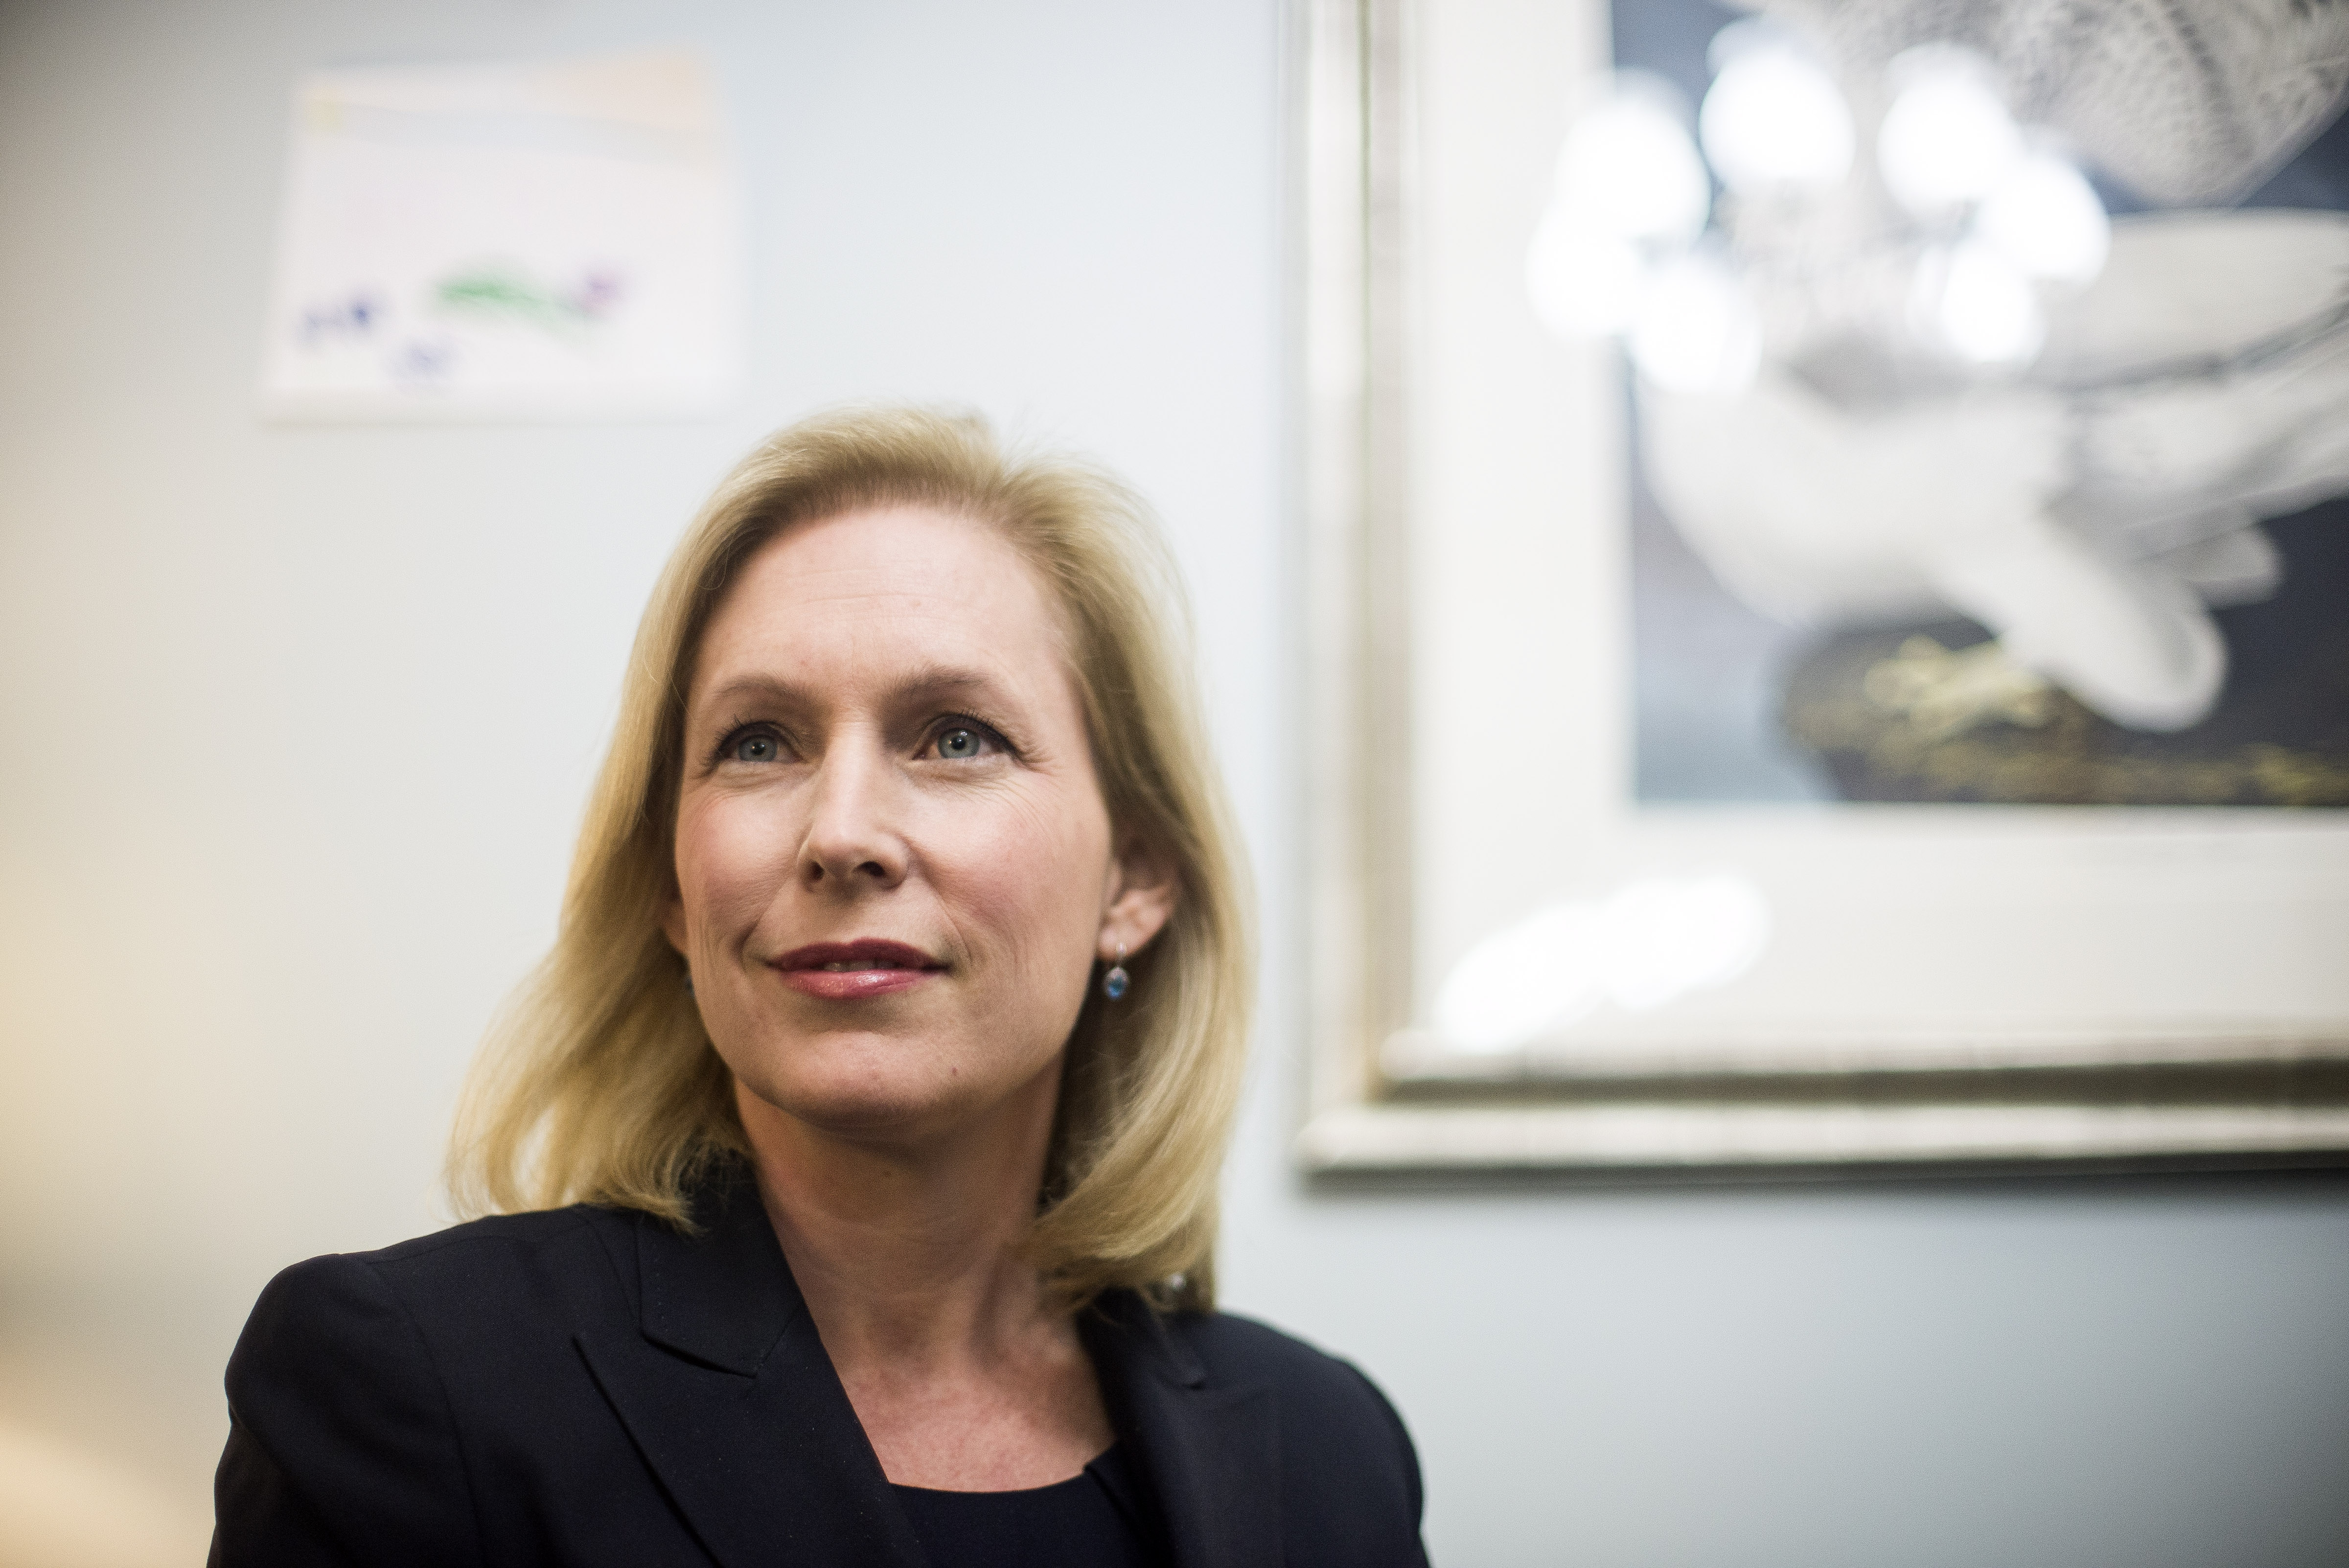 New book by Sen. Kirsten Gillibrand offers a revealing glimpse into male-dominated environment in Congress.